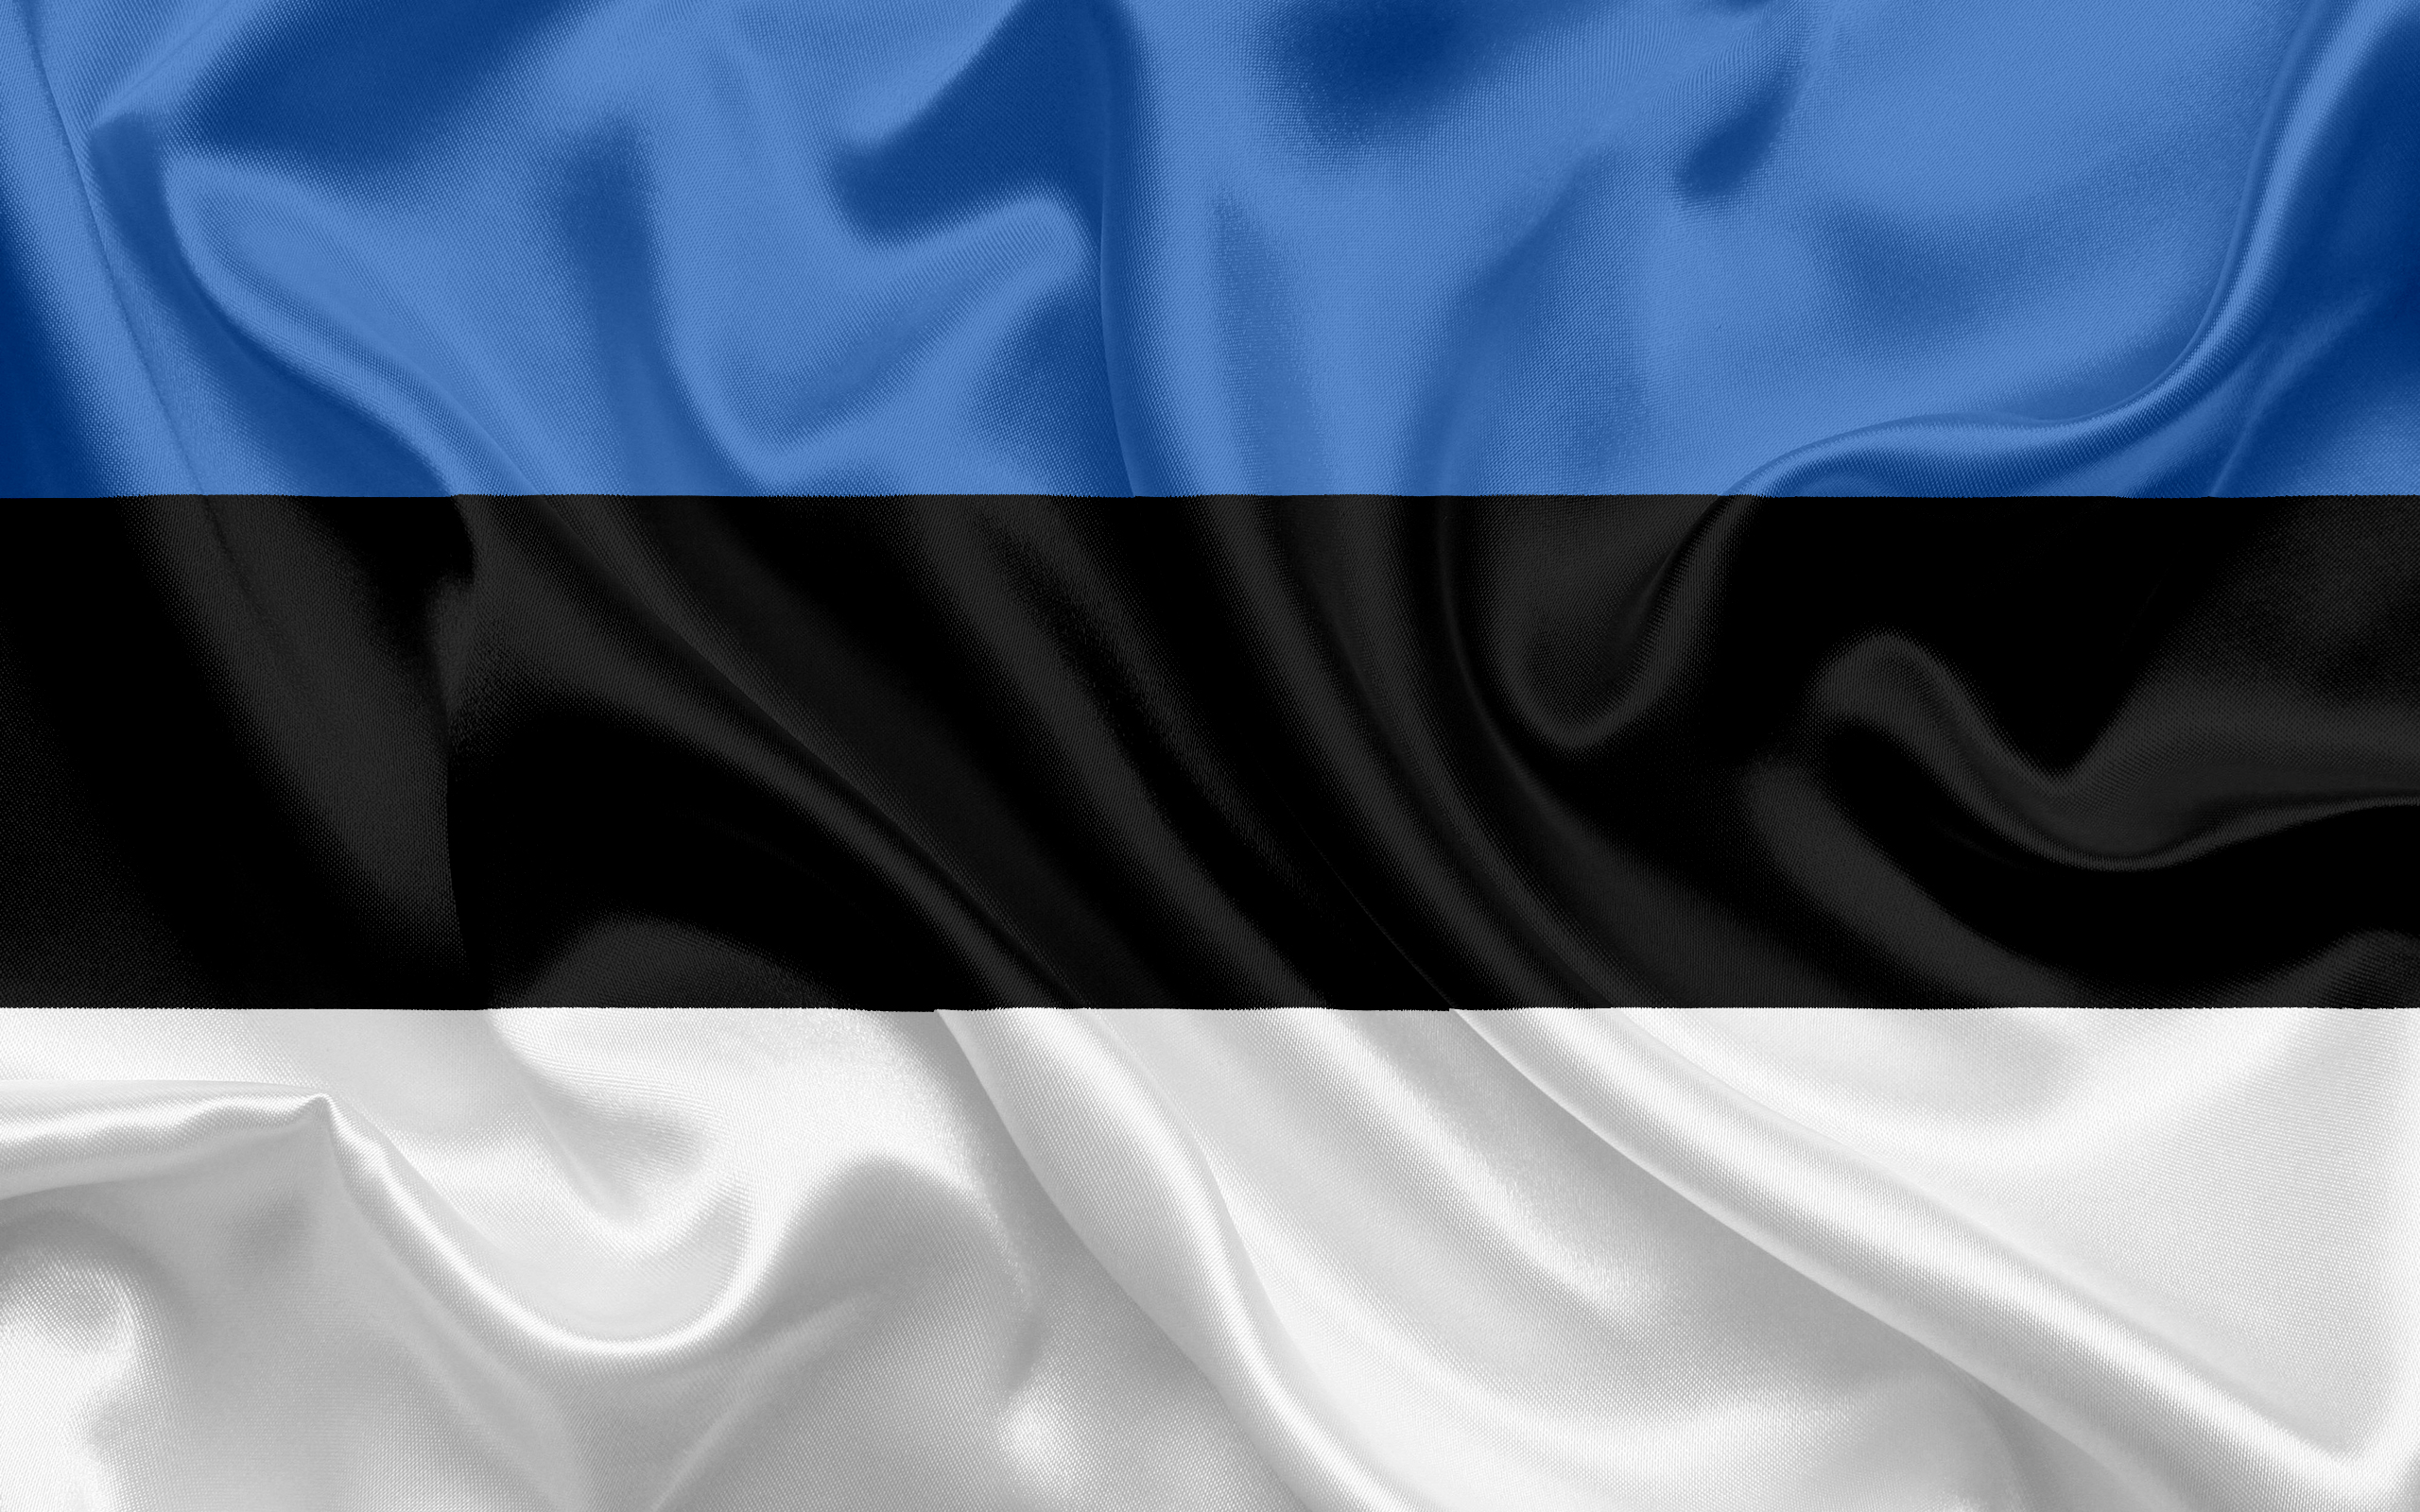 Download wallpapers Estonian flag Estonia Europe the flag of 2560x1600